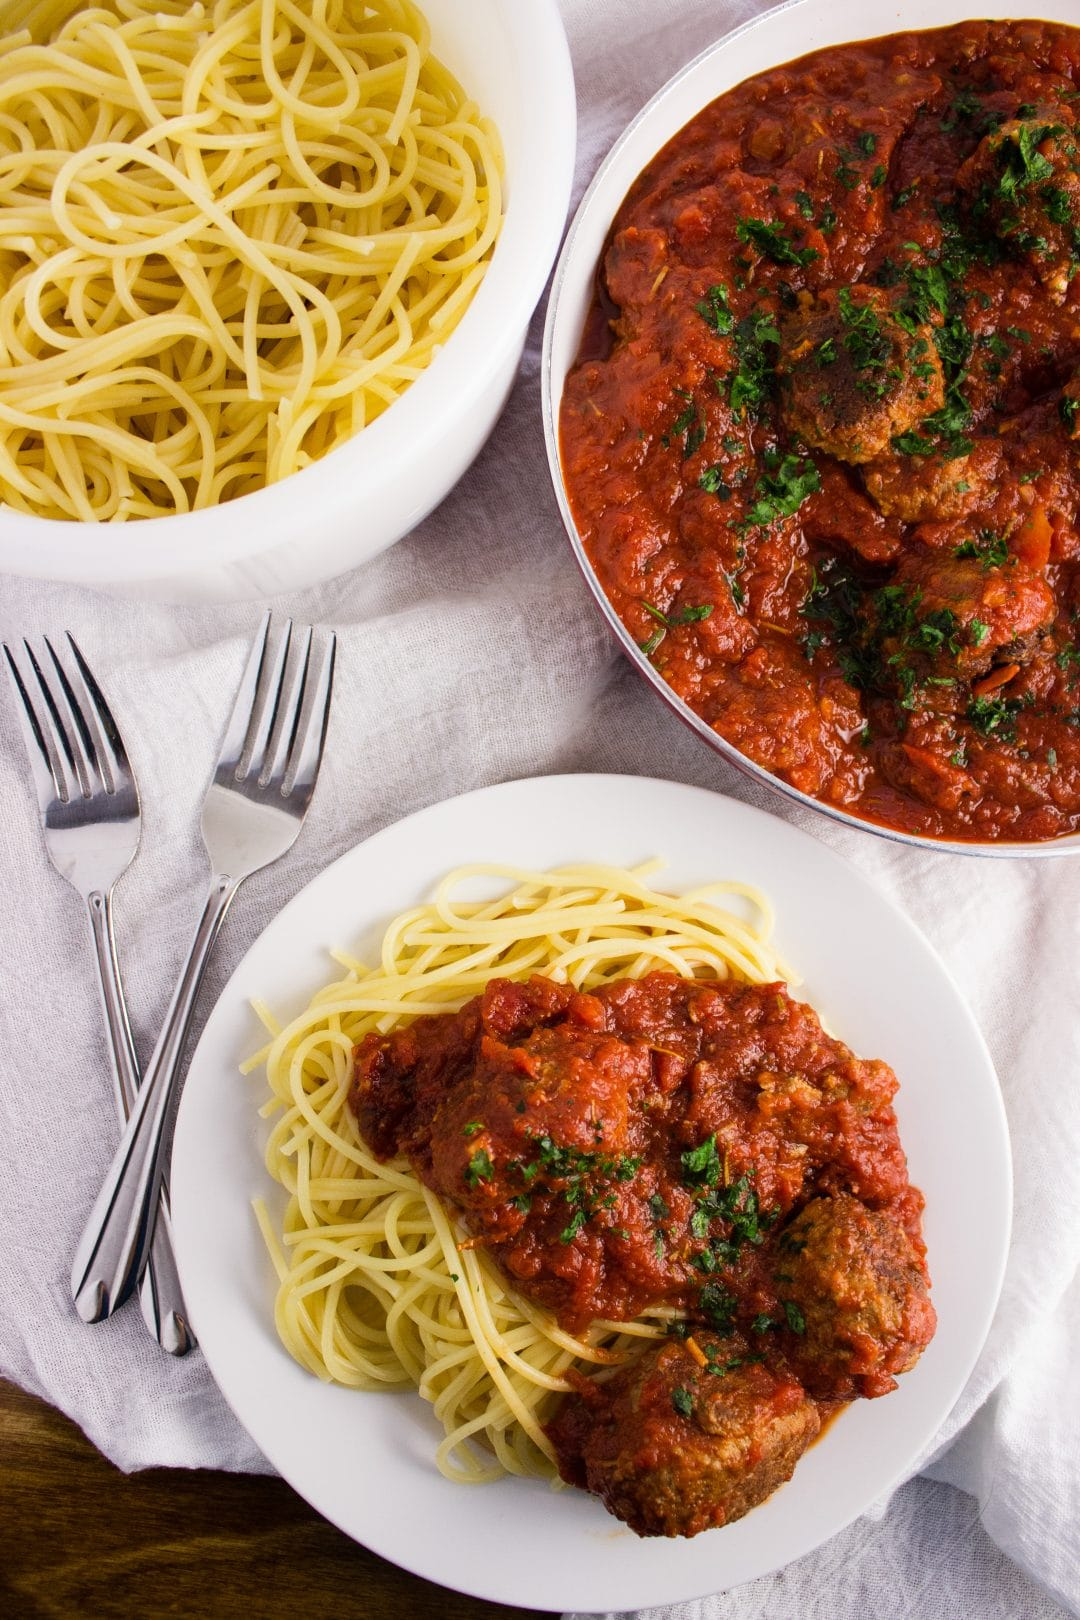 A quick and easy Spaghetti and Meatballs recipe that includes a delicious pasta sauce that is full of flavor. The perfect family night dinner to try. simplylakita.com #spaghetti #easyrecipe